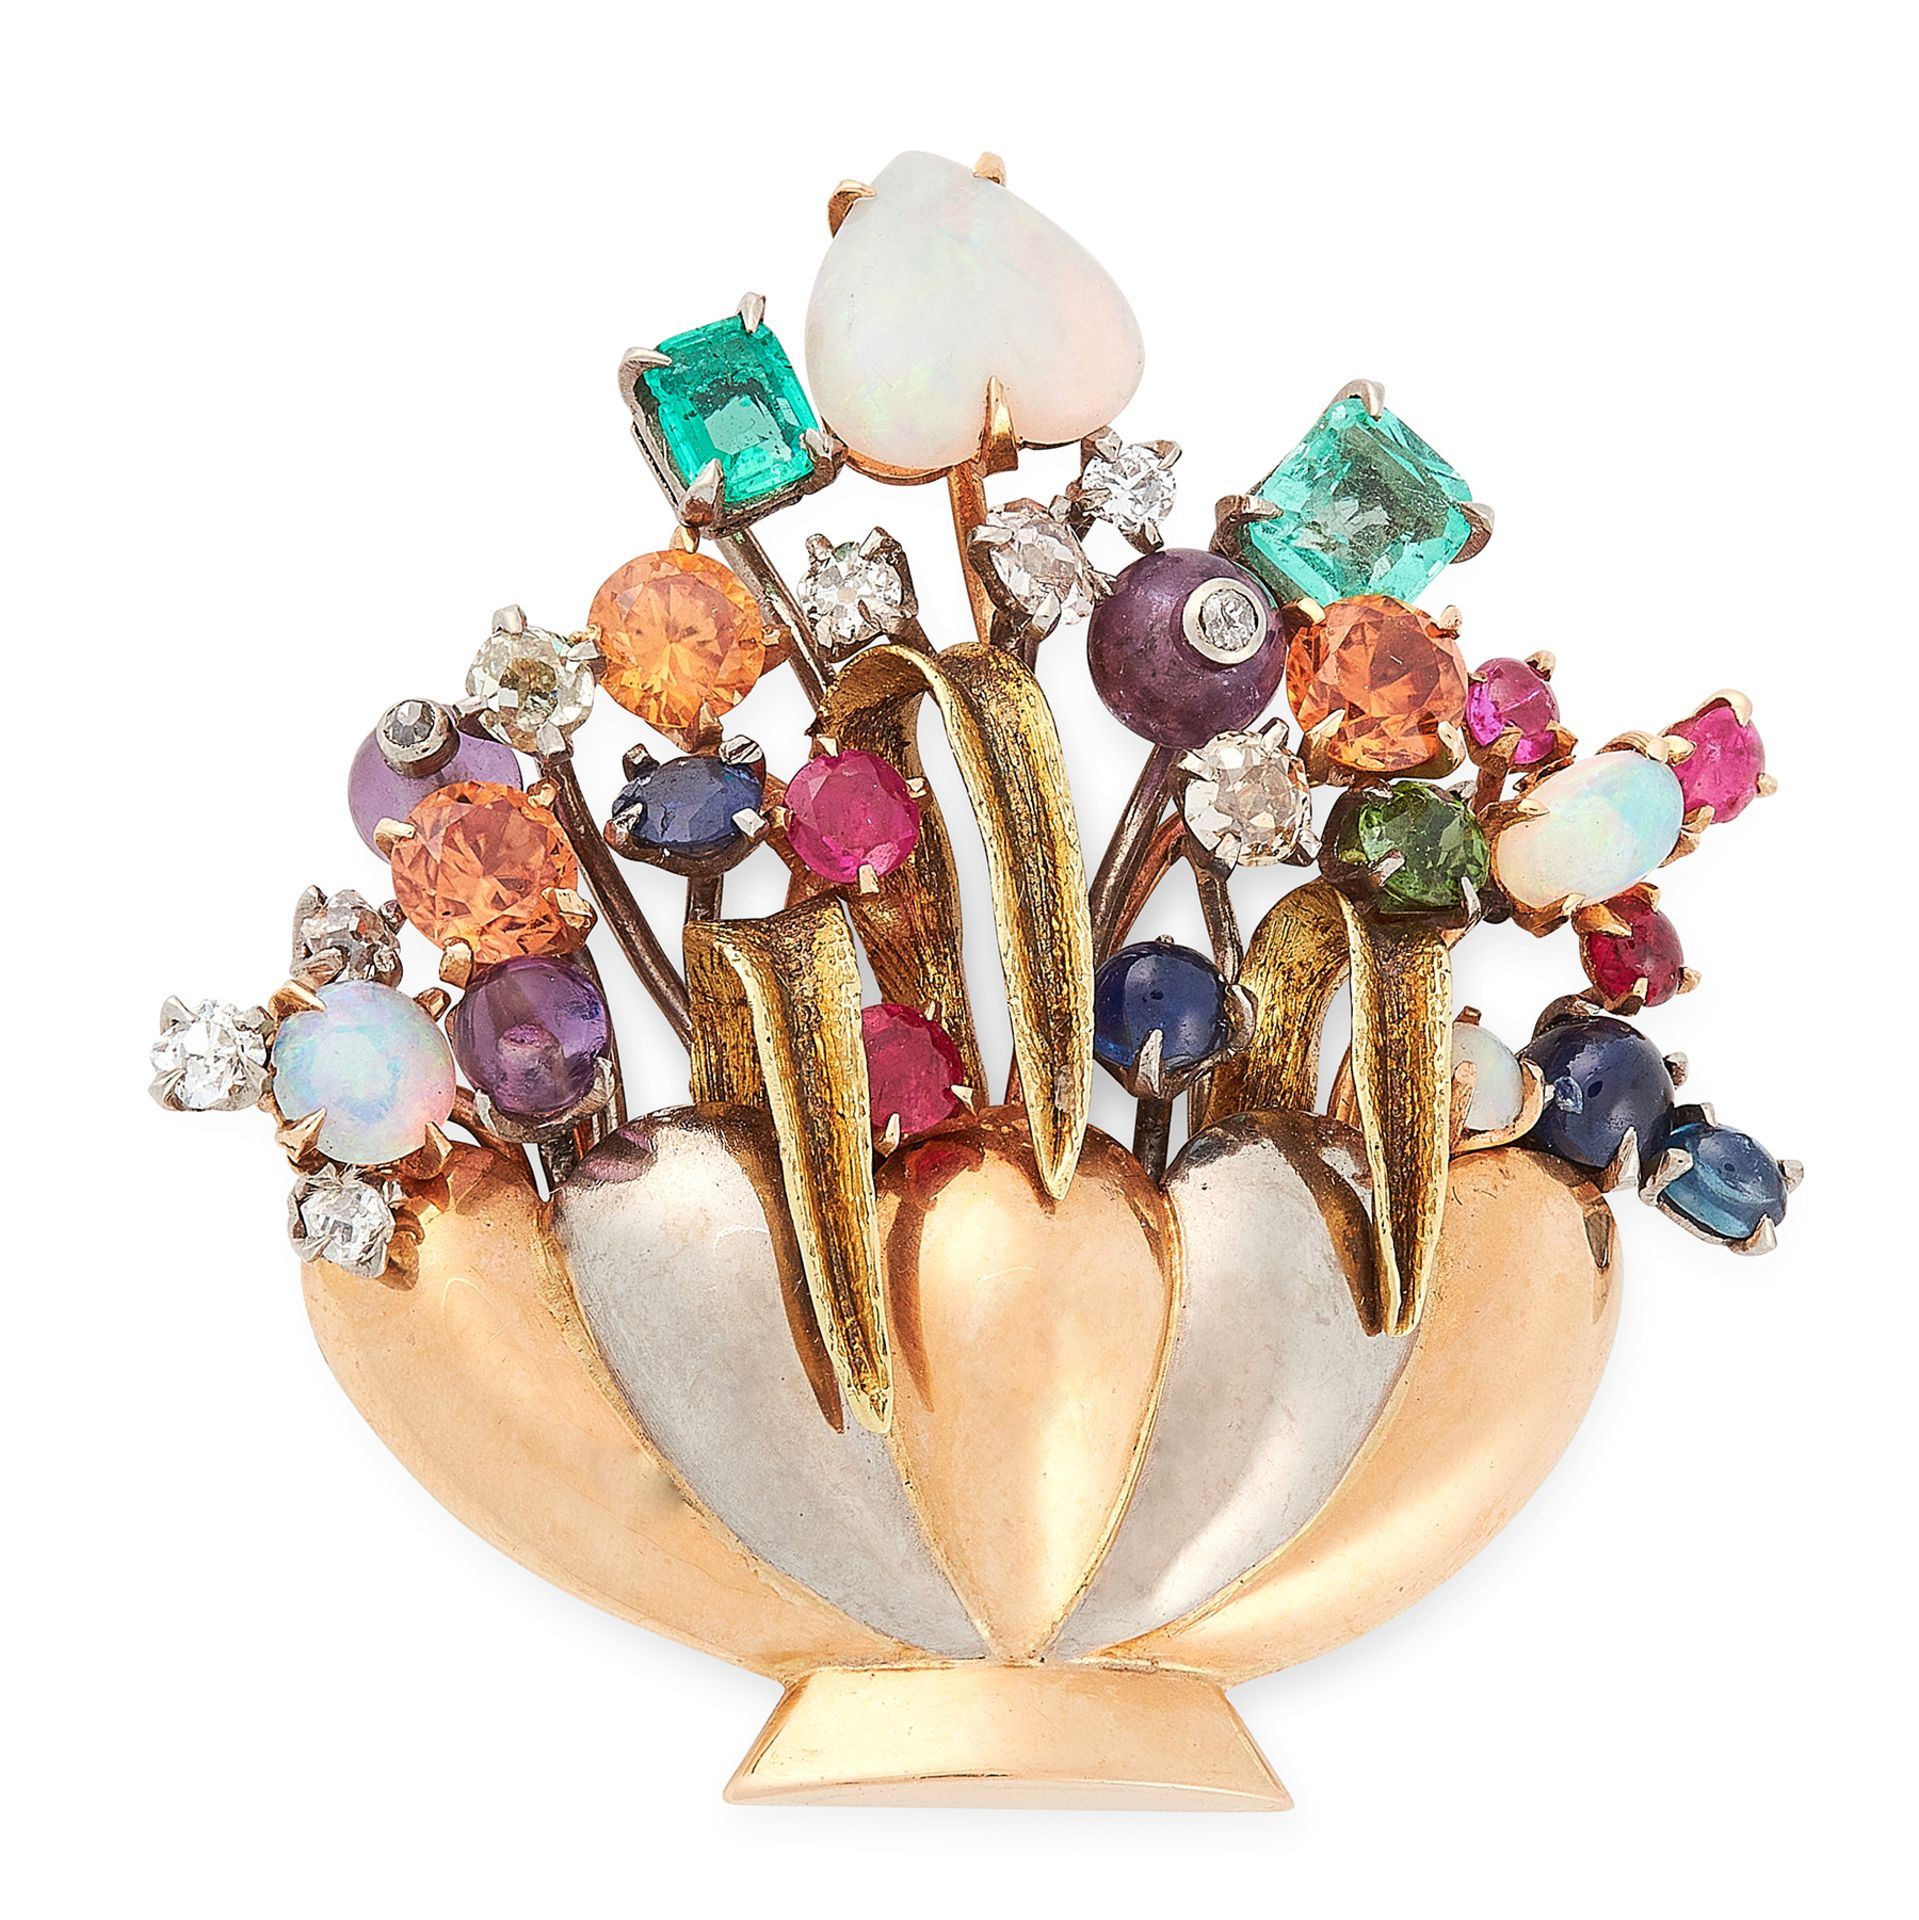 Los 29 - A VINTAGE JEWELLED GIARDINETTO BROOCH in yellow, white and rose gold, designed as a basket of